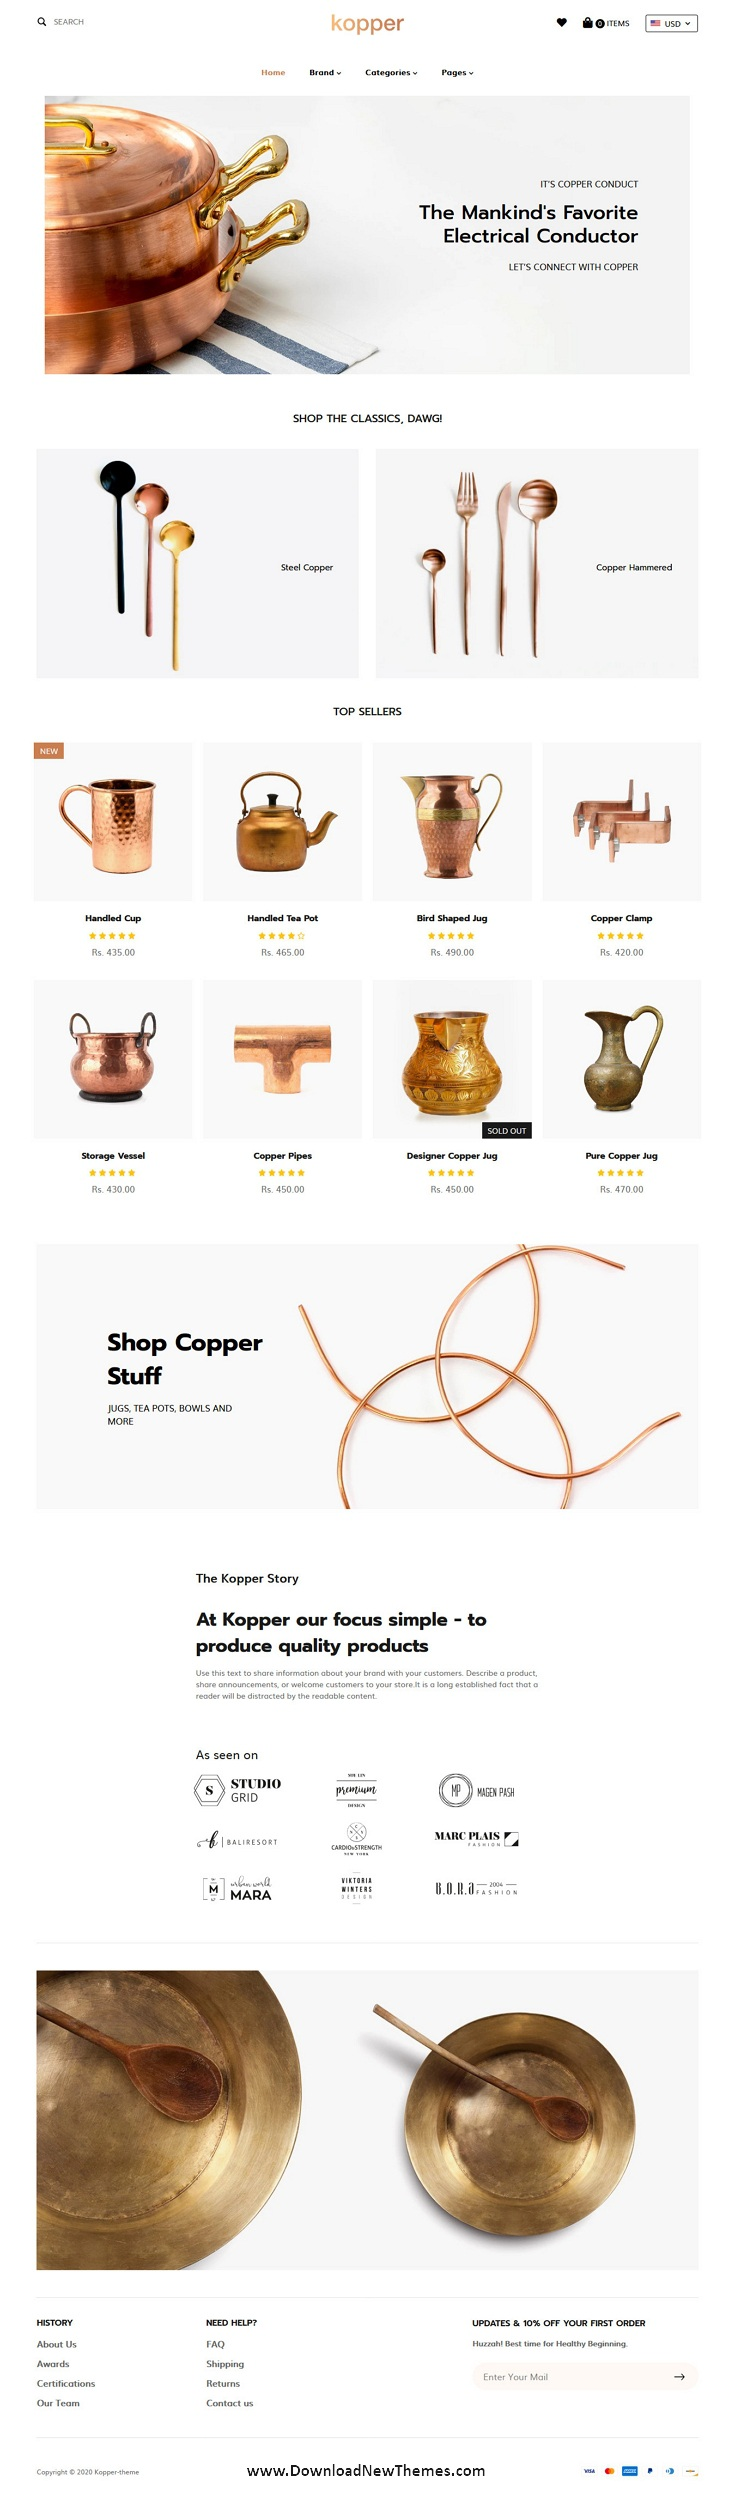 Copper Utensils & Appliances Shopify Theme